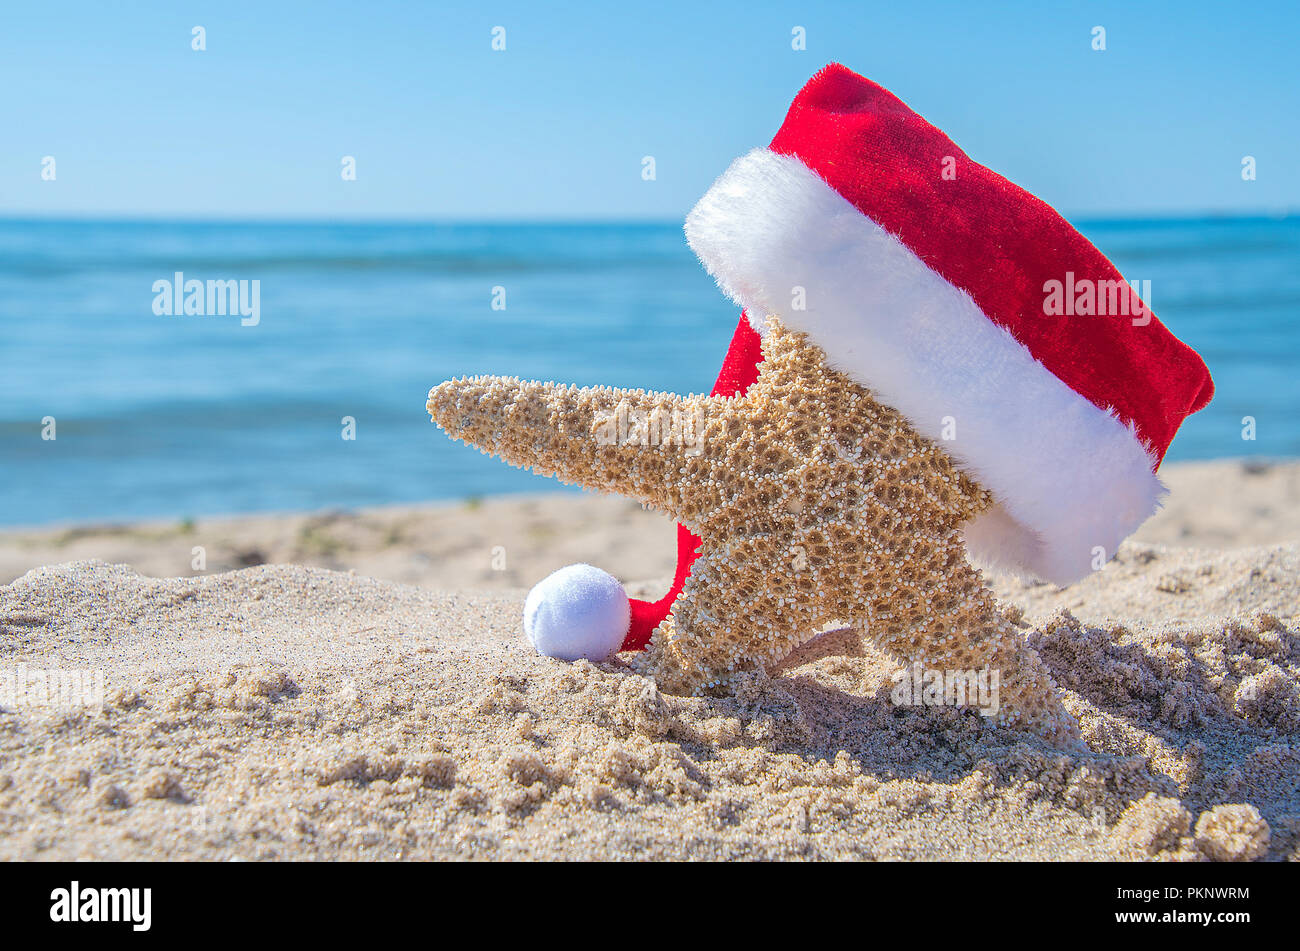 Beach Christmas.Christmas Hat On Starfish In Beach Sand With Ocean Water